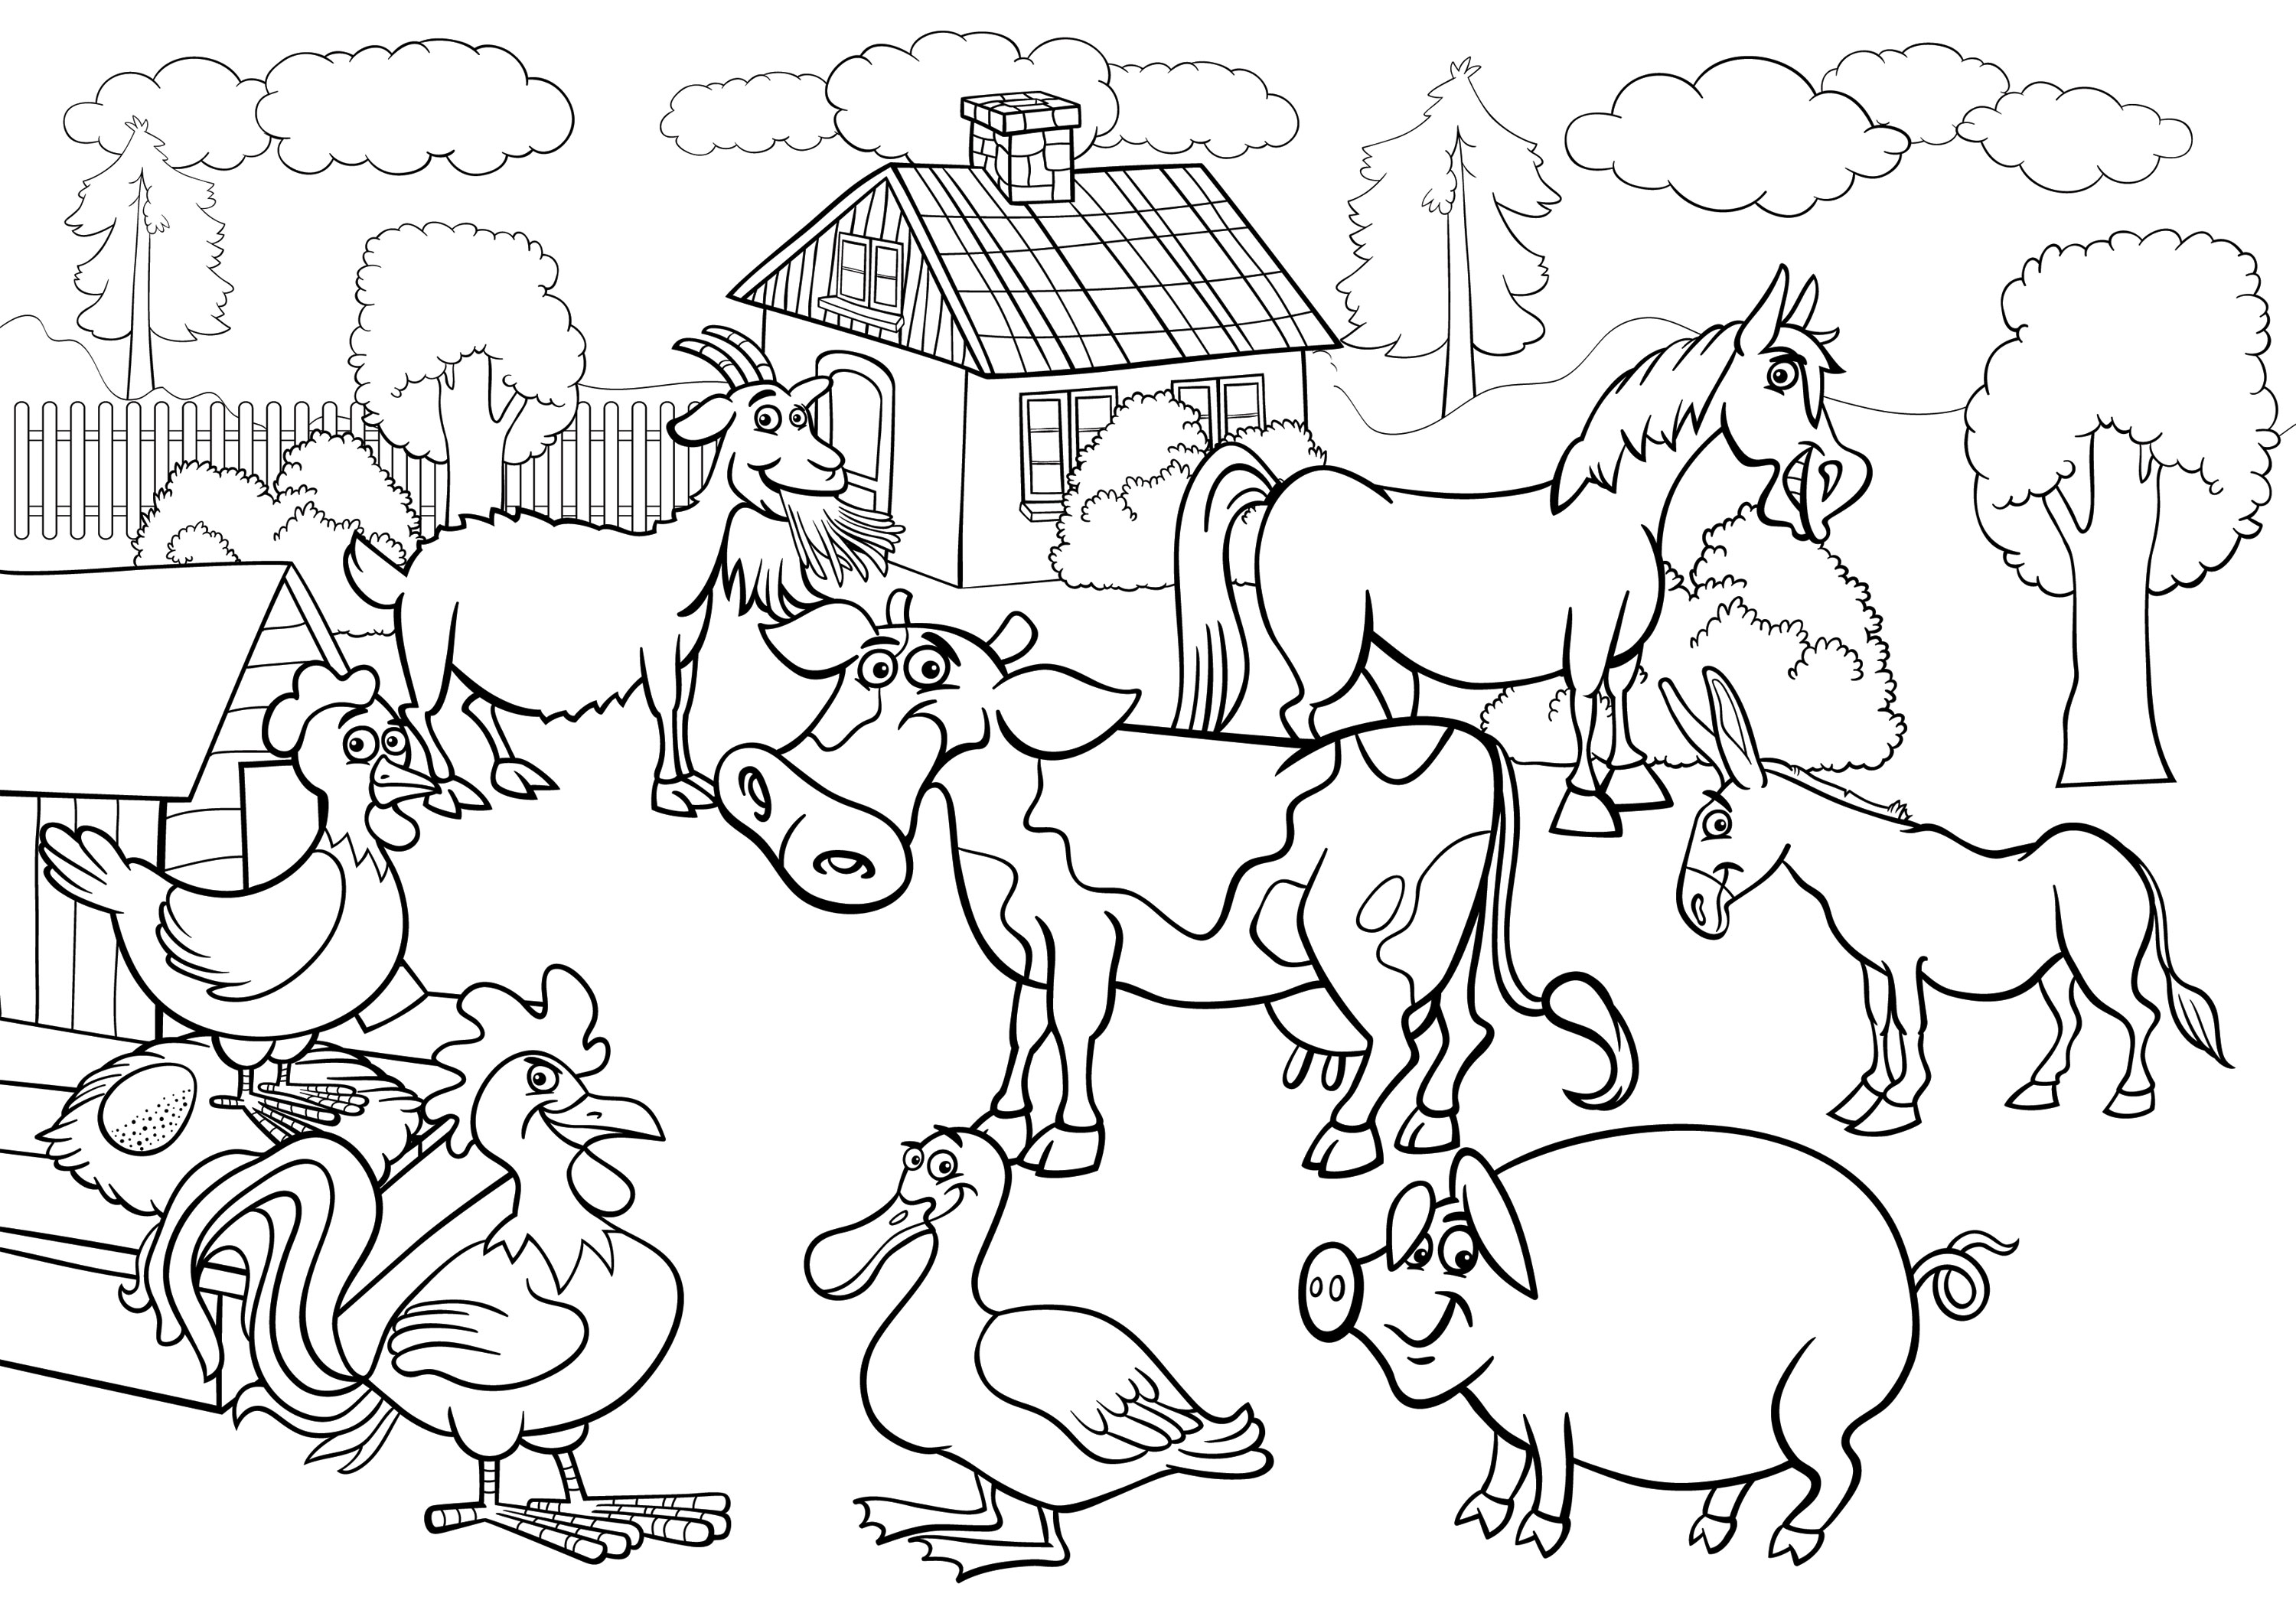 Colouring Pages For Farm Animals : Printable farm animal coloring pages me